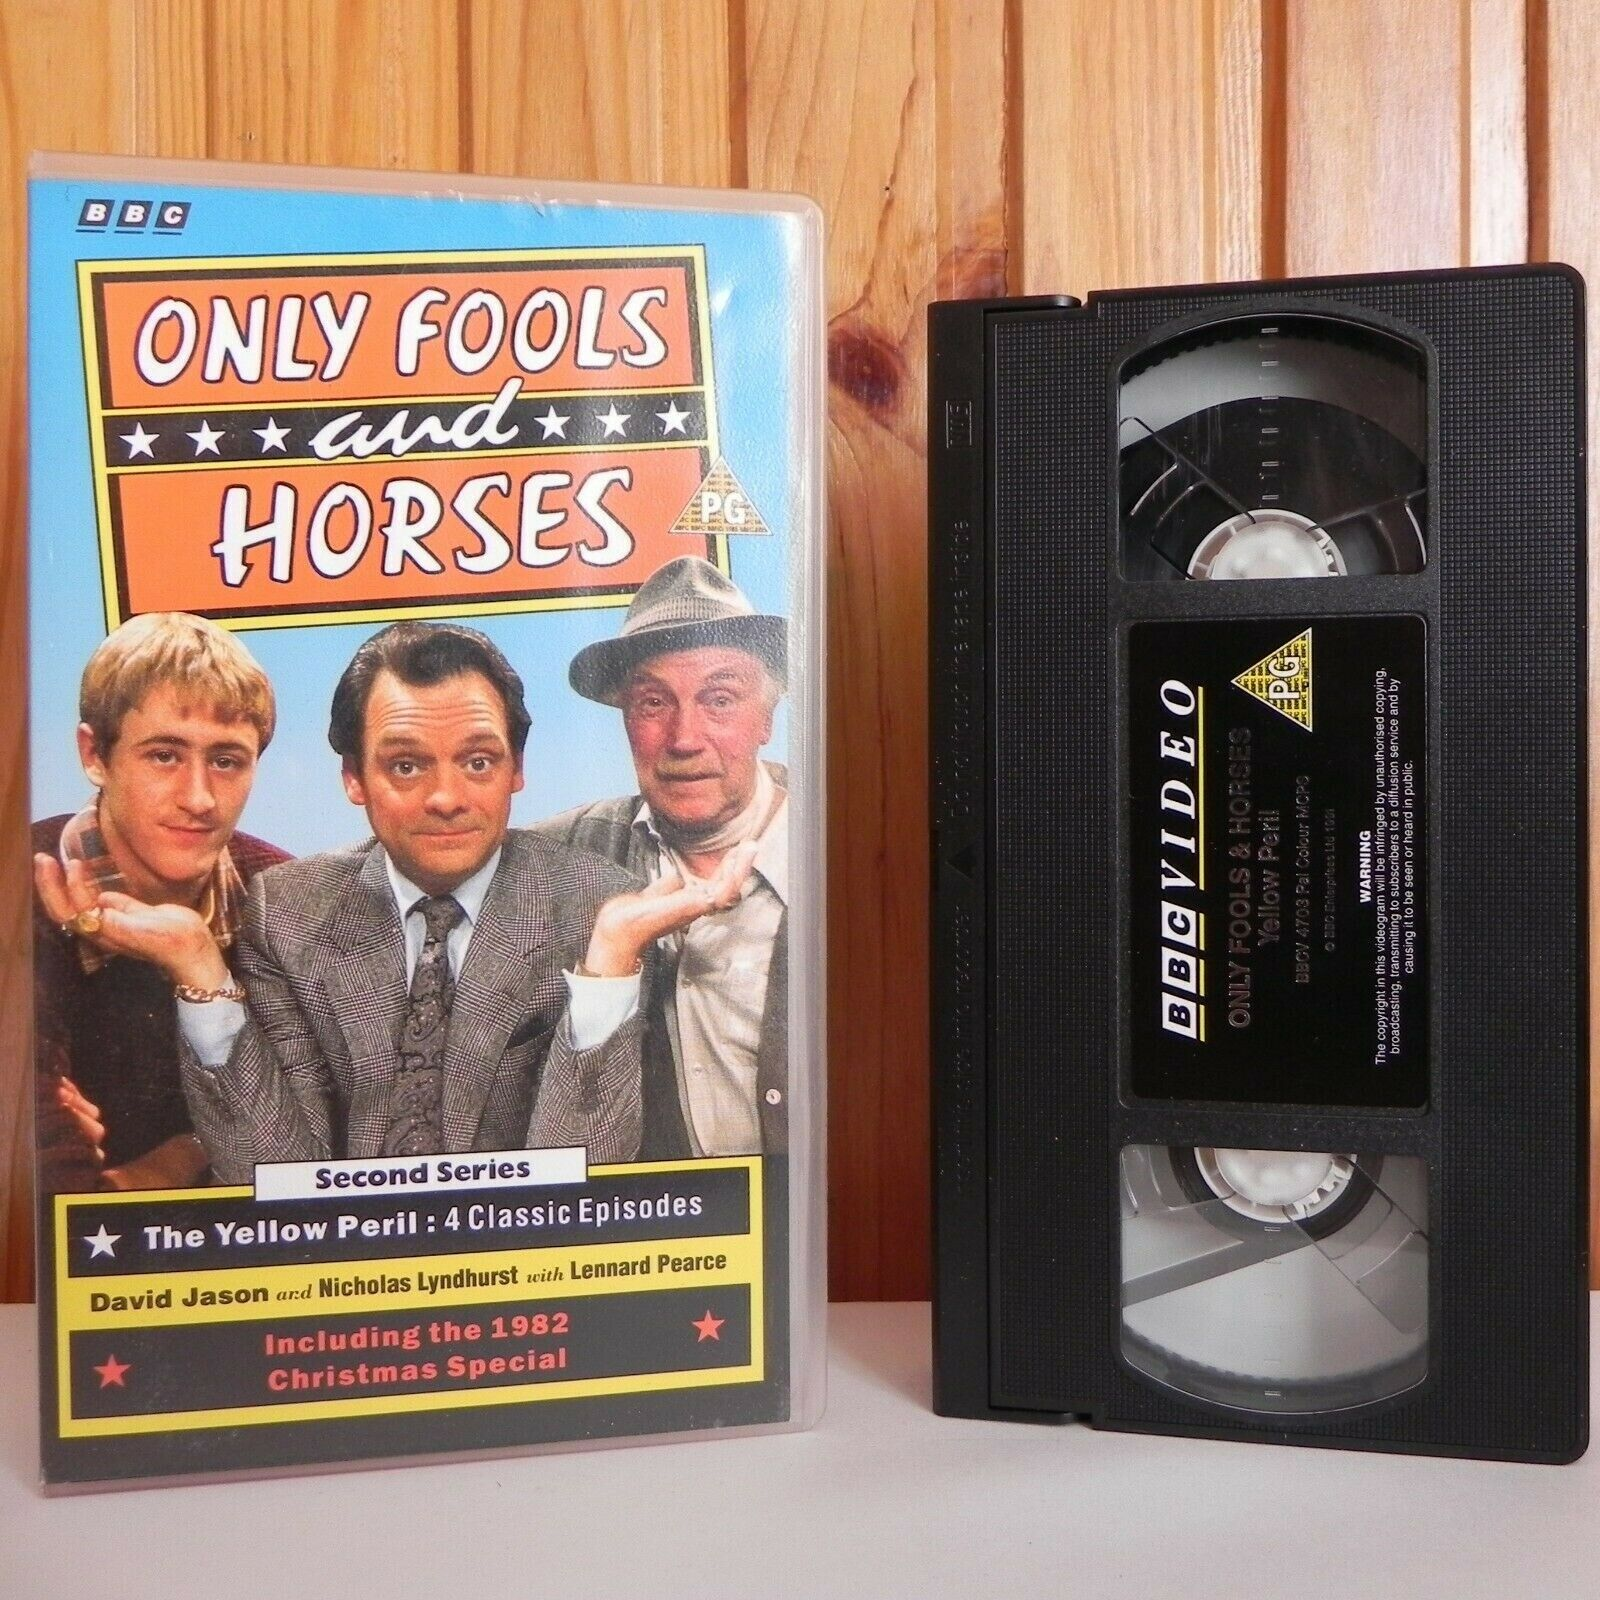 Only Fools And Horses - BBC - Second Series - 4 Classic Episodes - TV Show - VHS